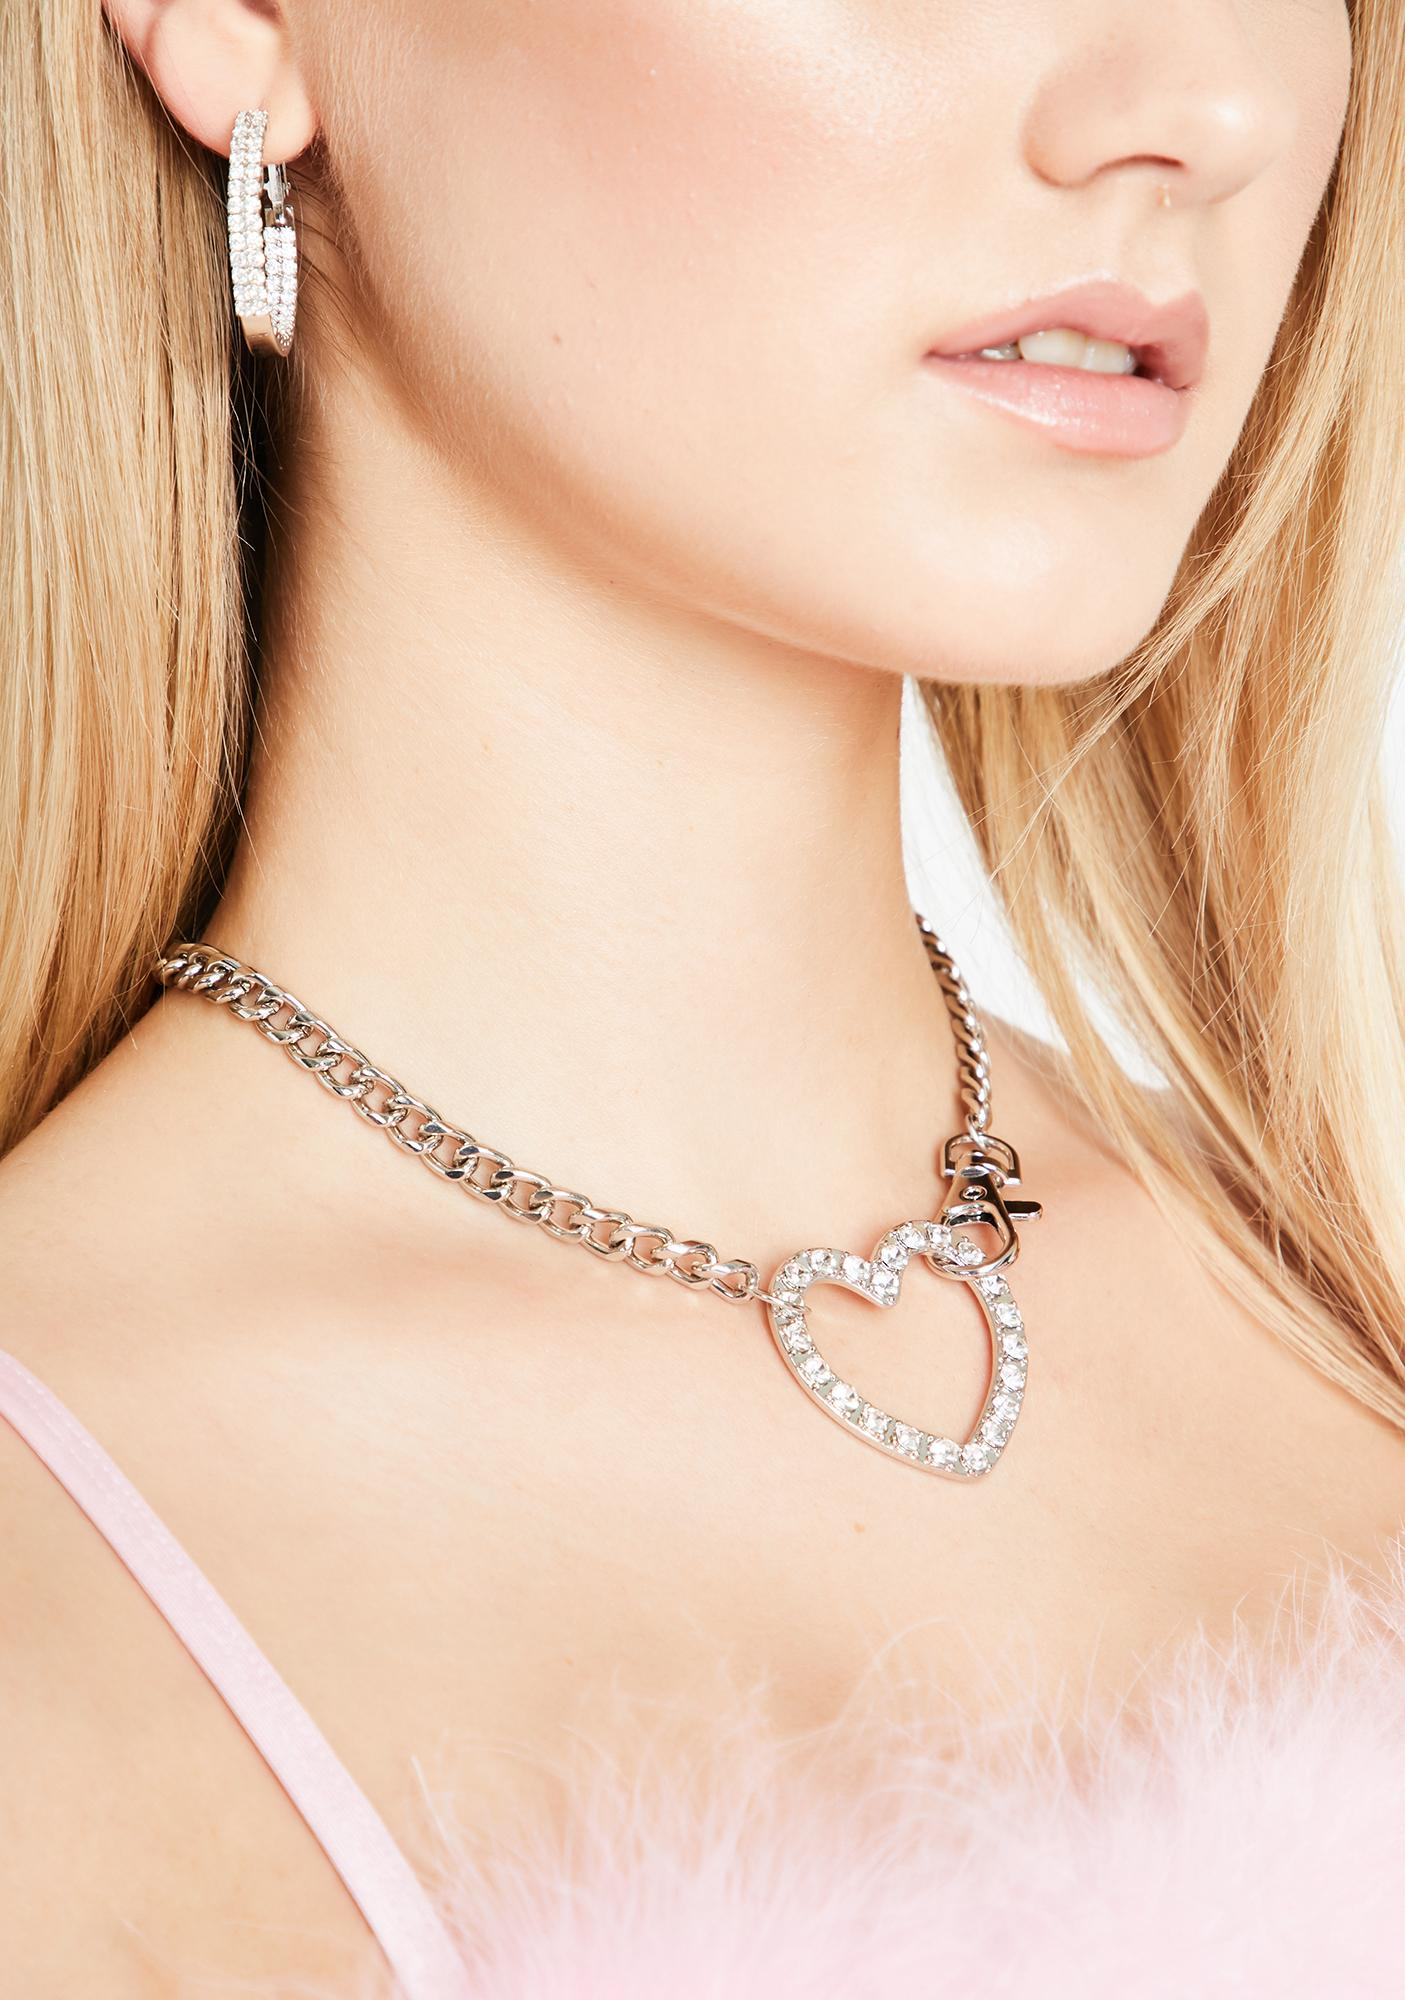 Self-Absorbed Heart Necklace